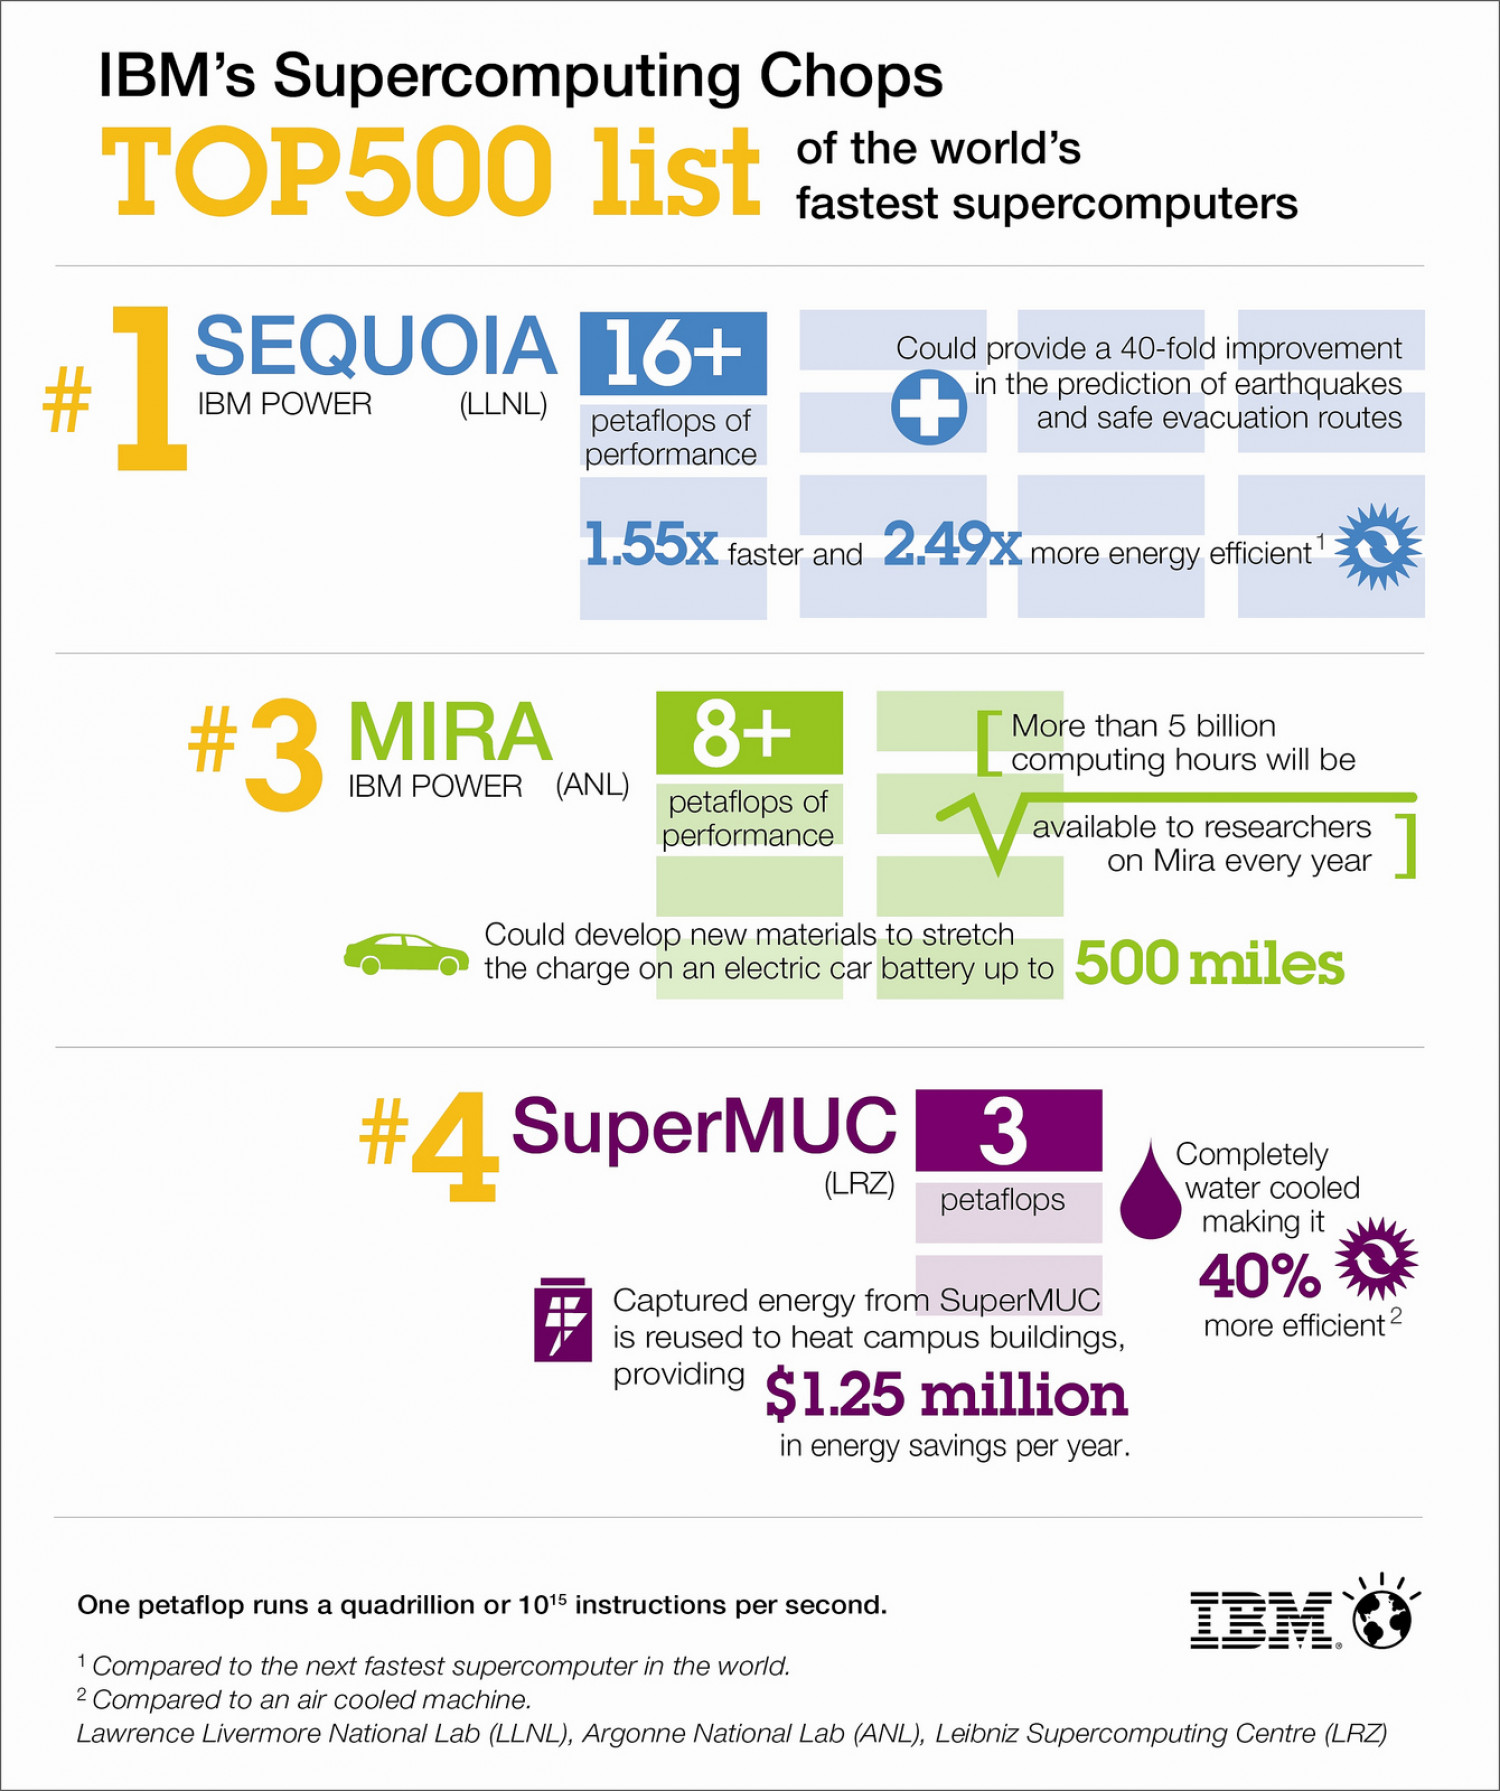 IBM's Supercomputing Chops Infographic